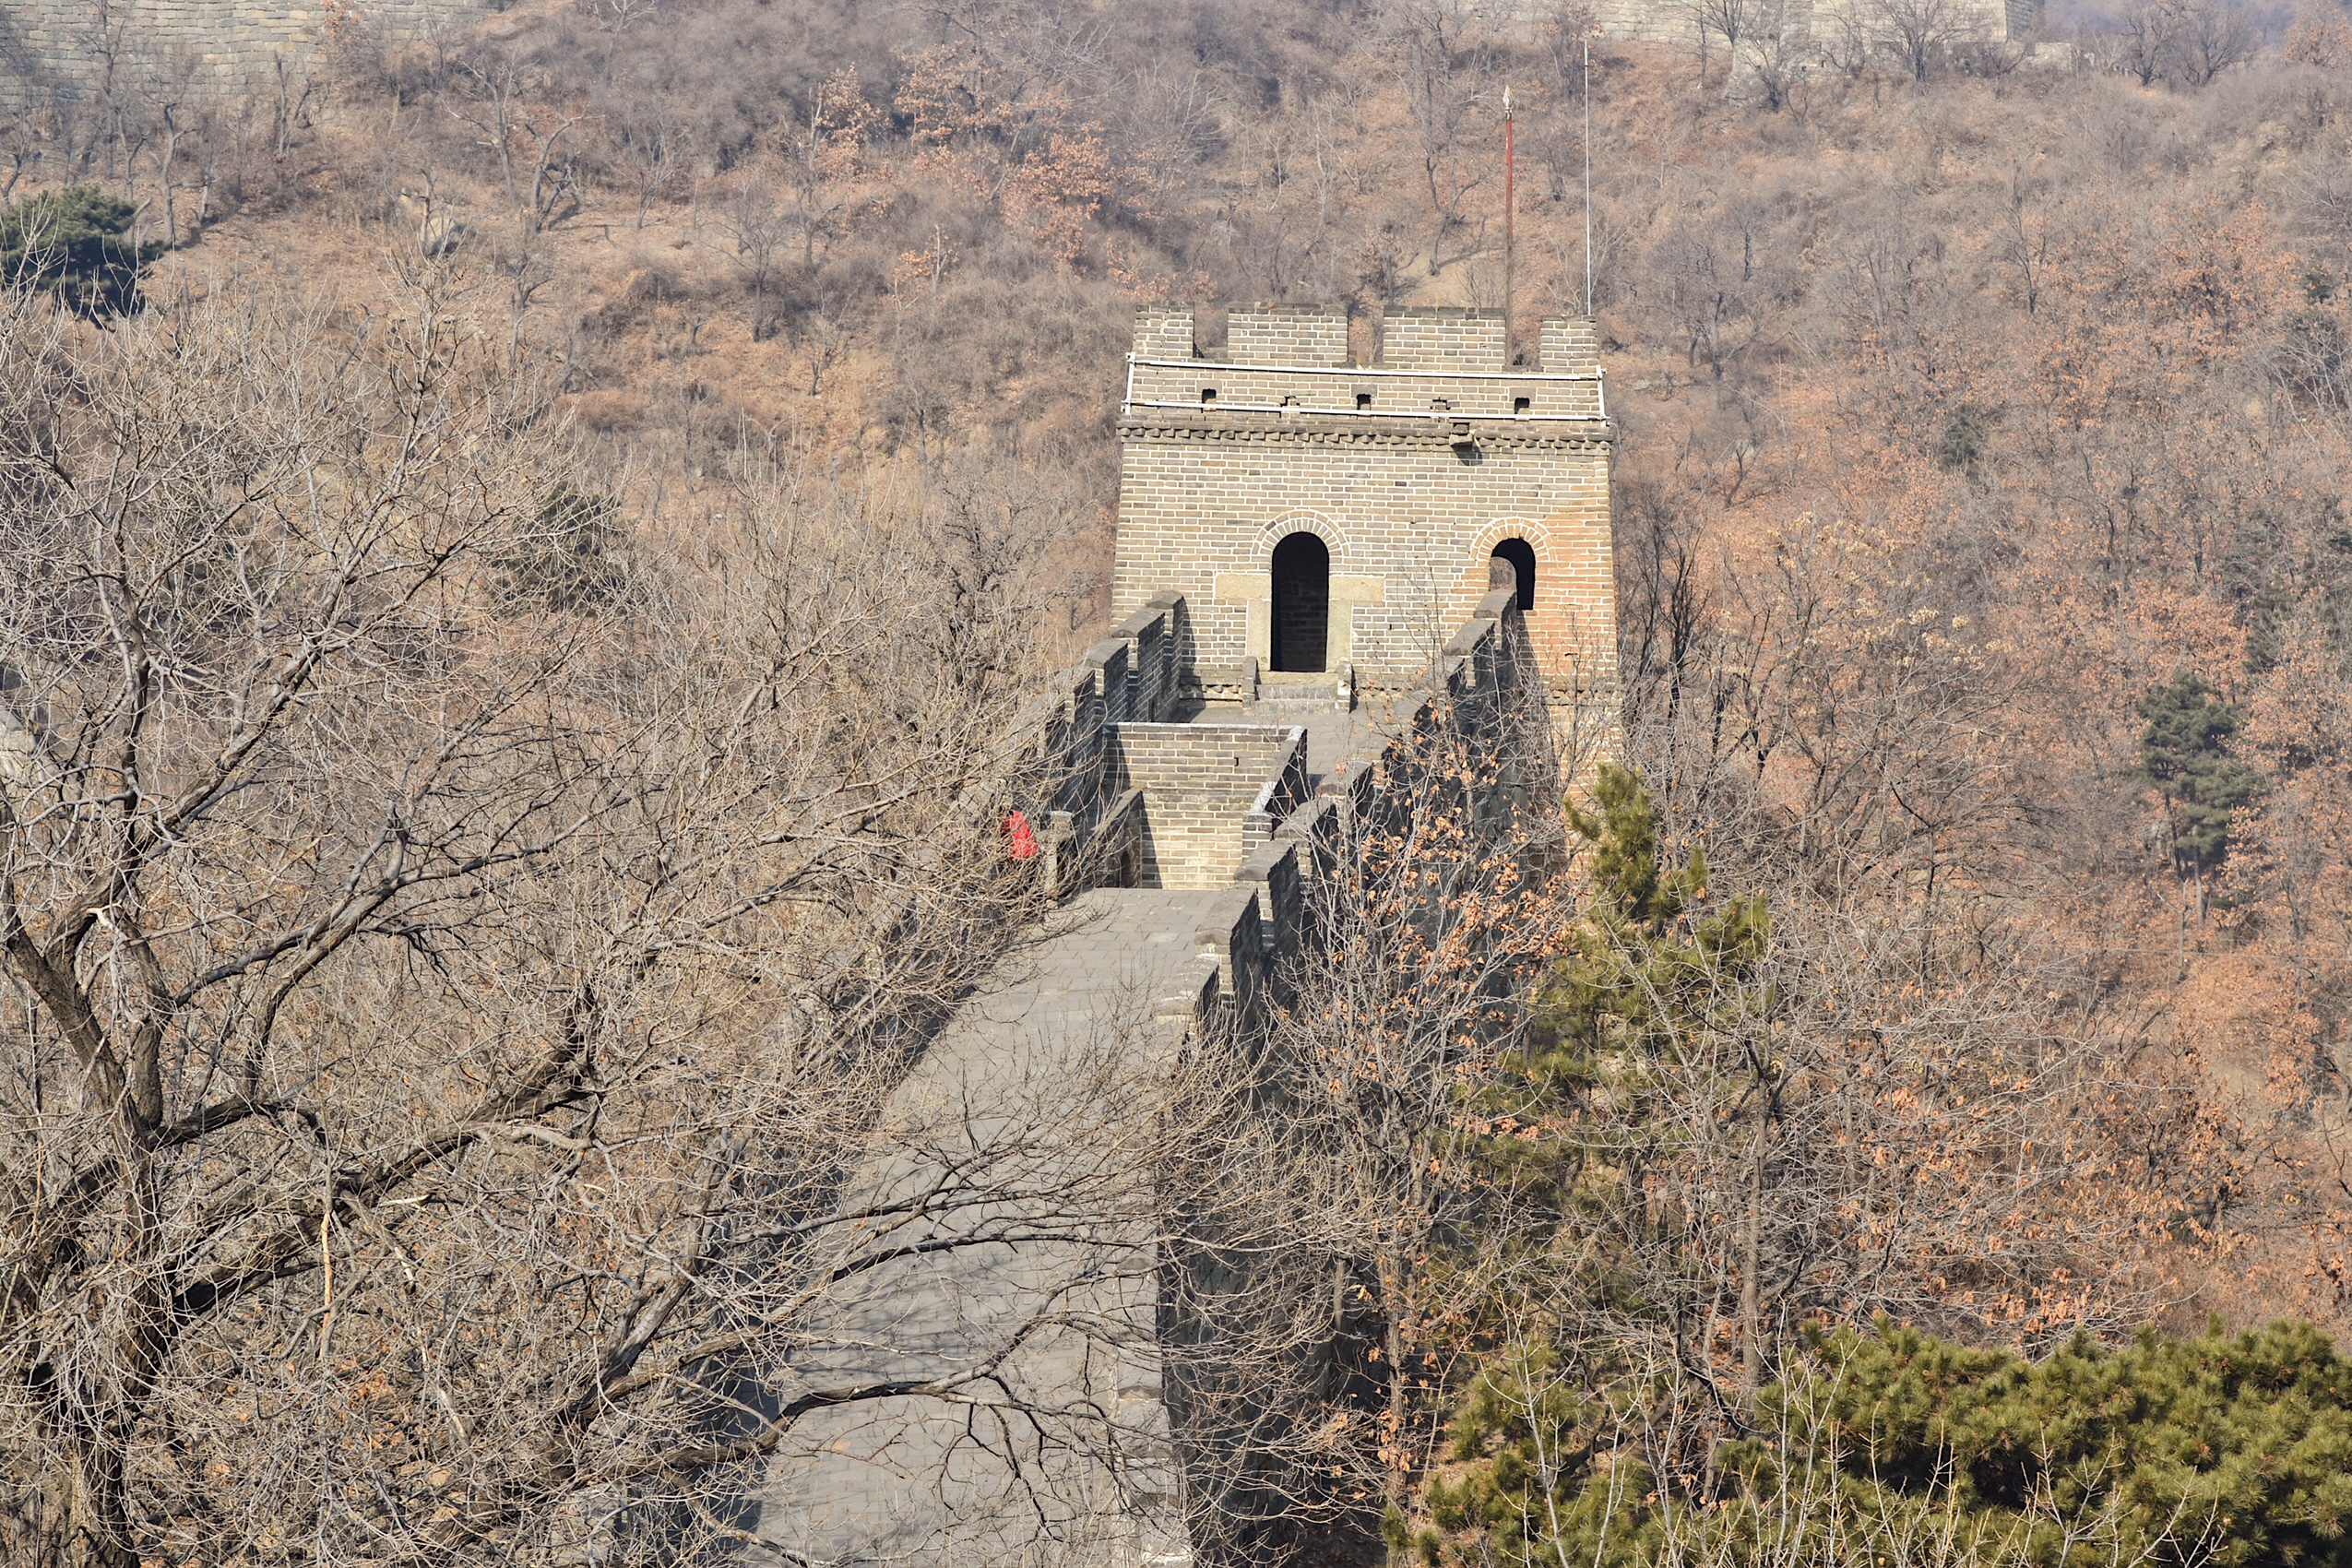 Image of Great Wall of China in Mutianyu